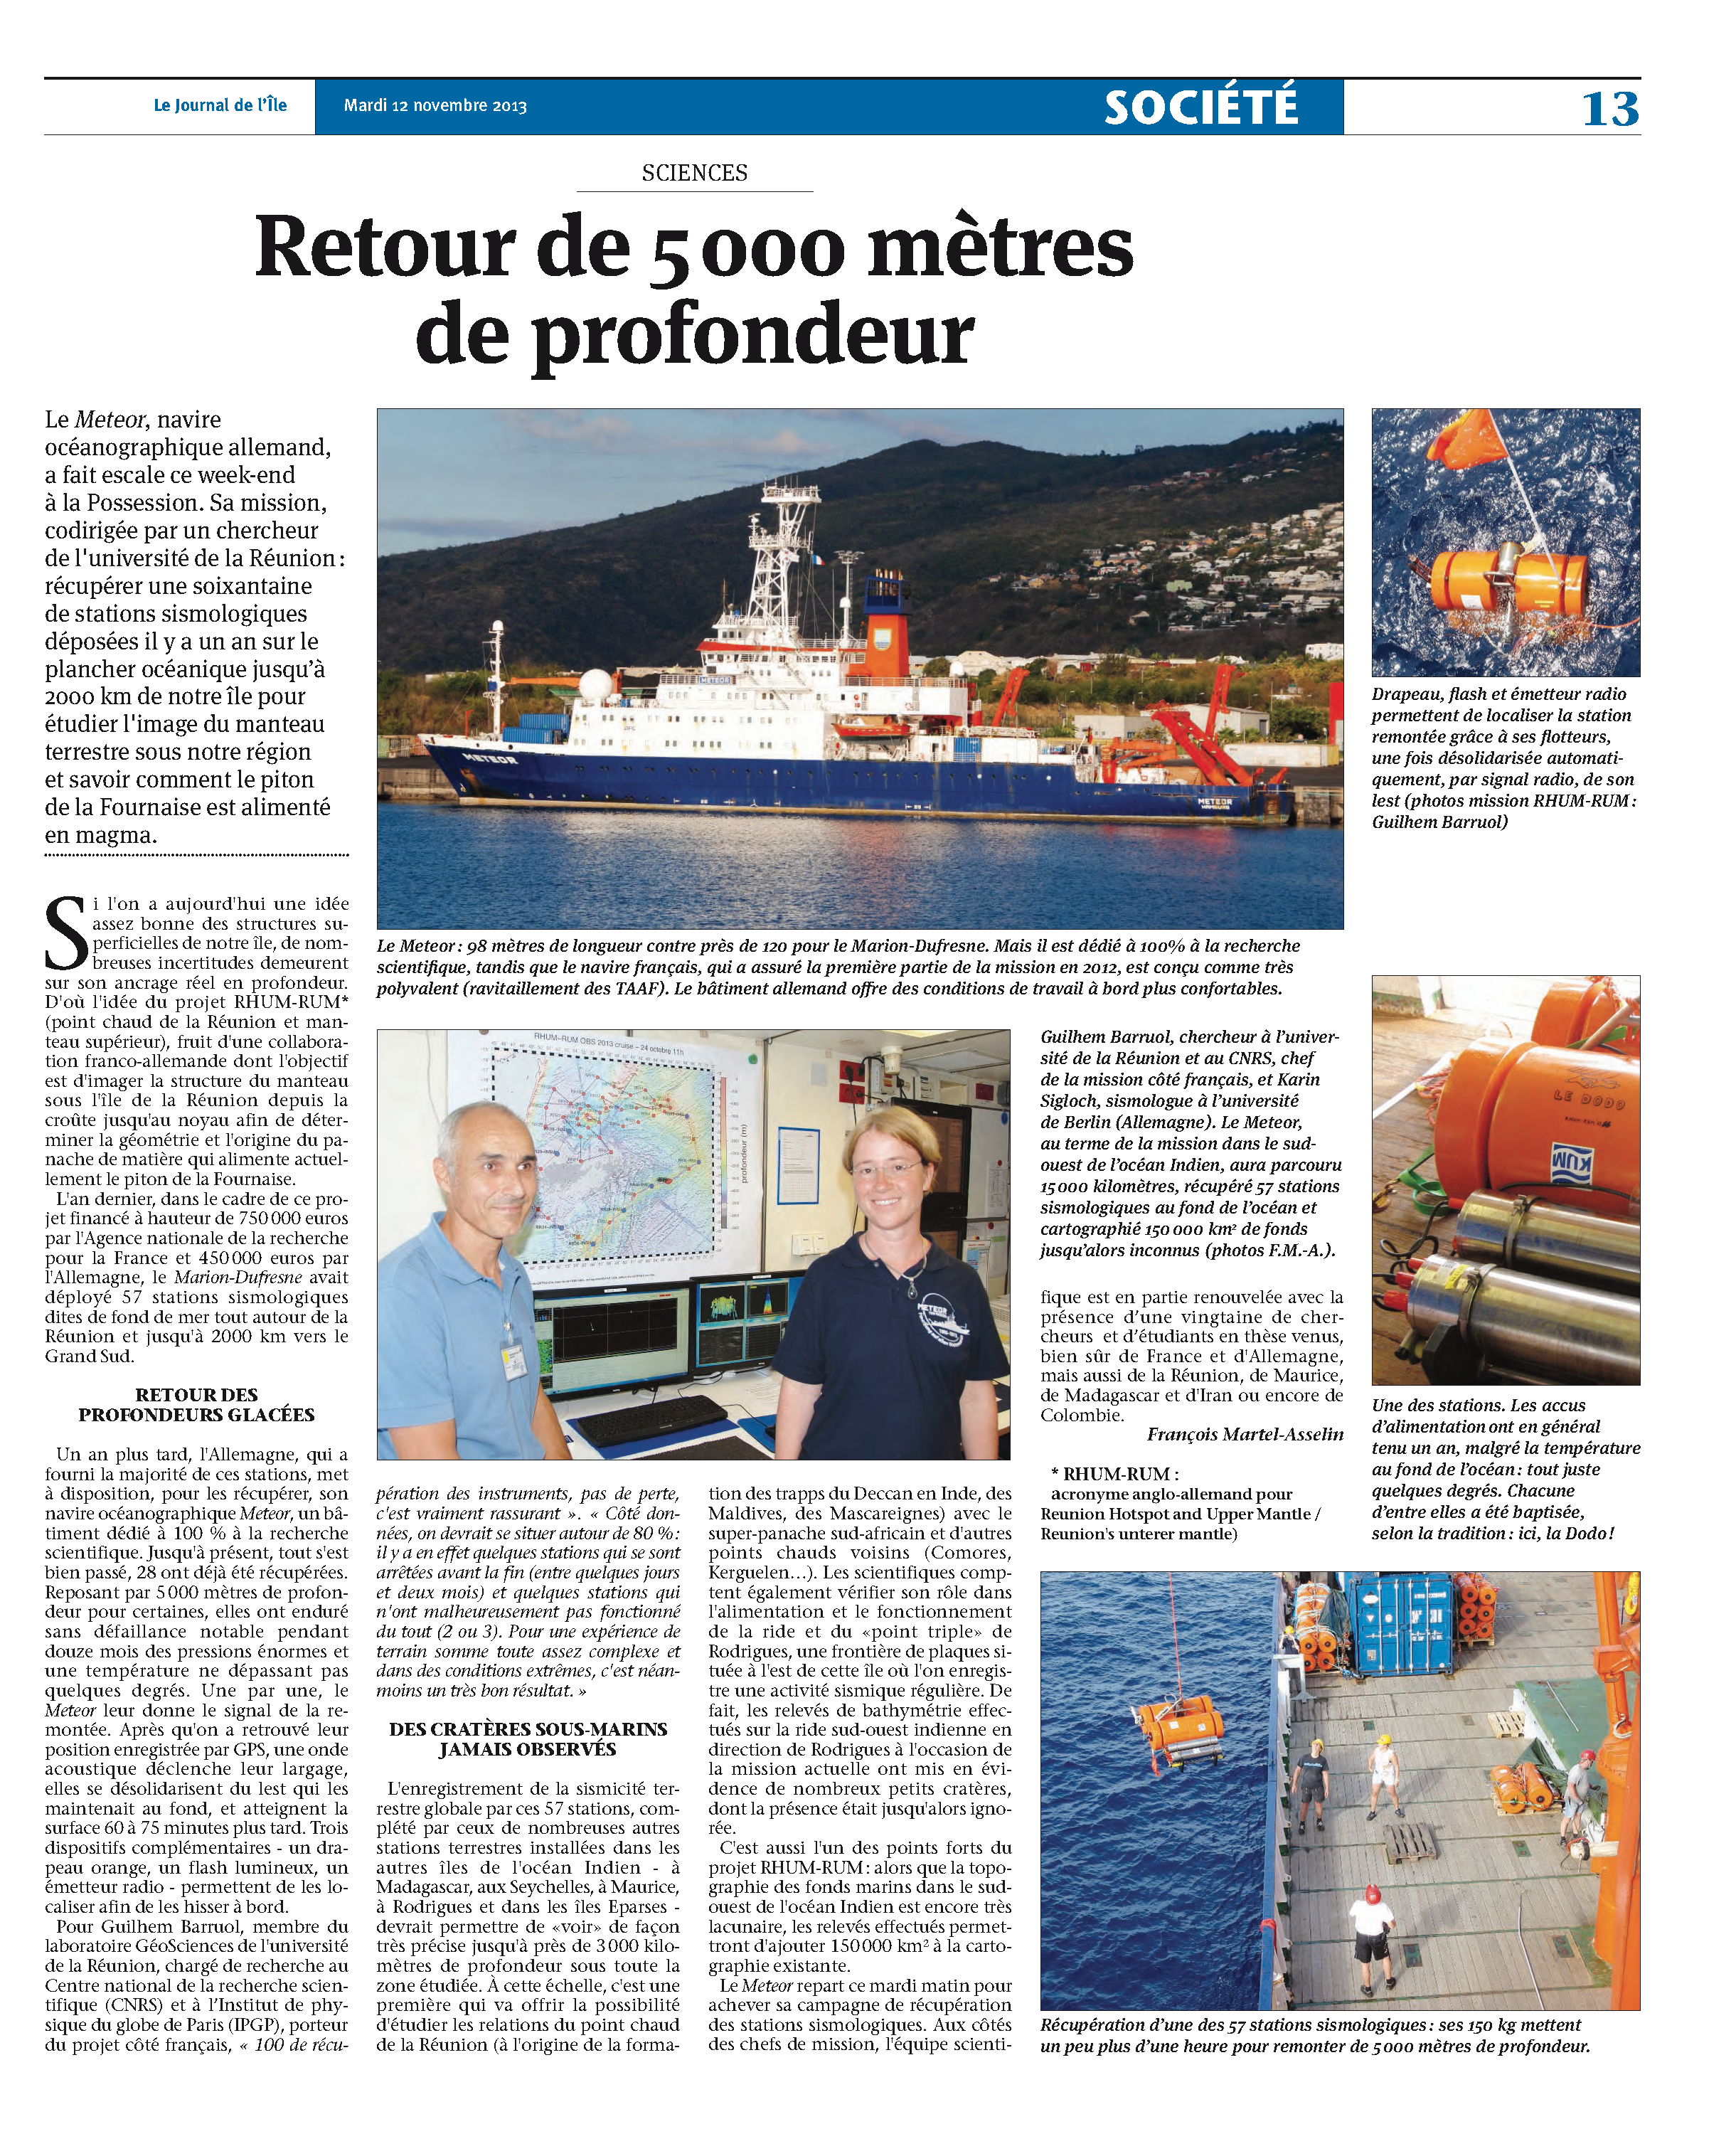 Journal de l'ile de La Reunion du 12 novembre 2013